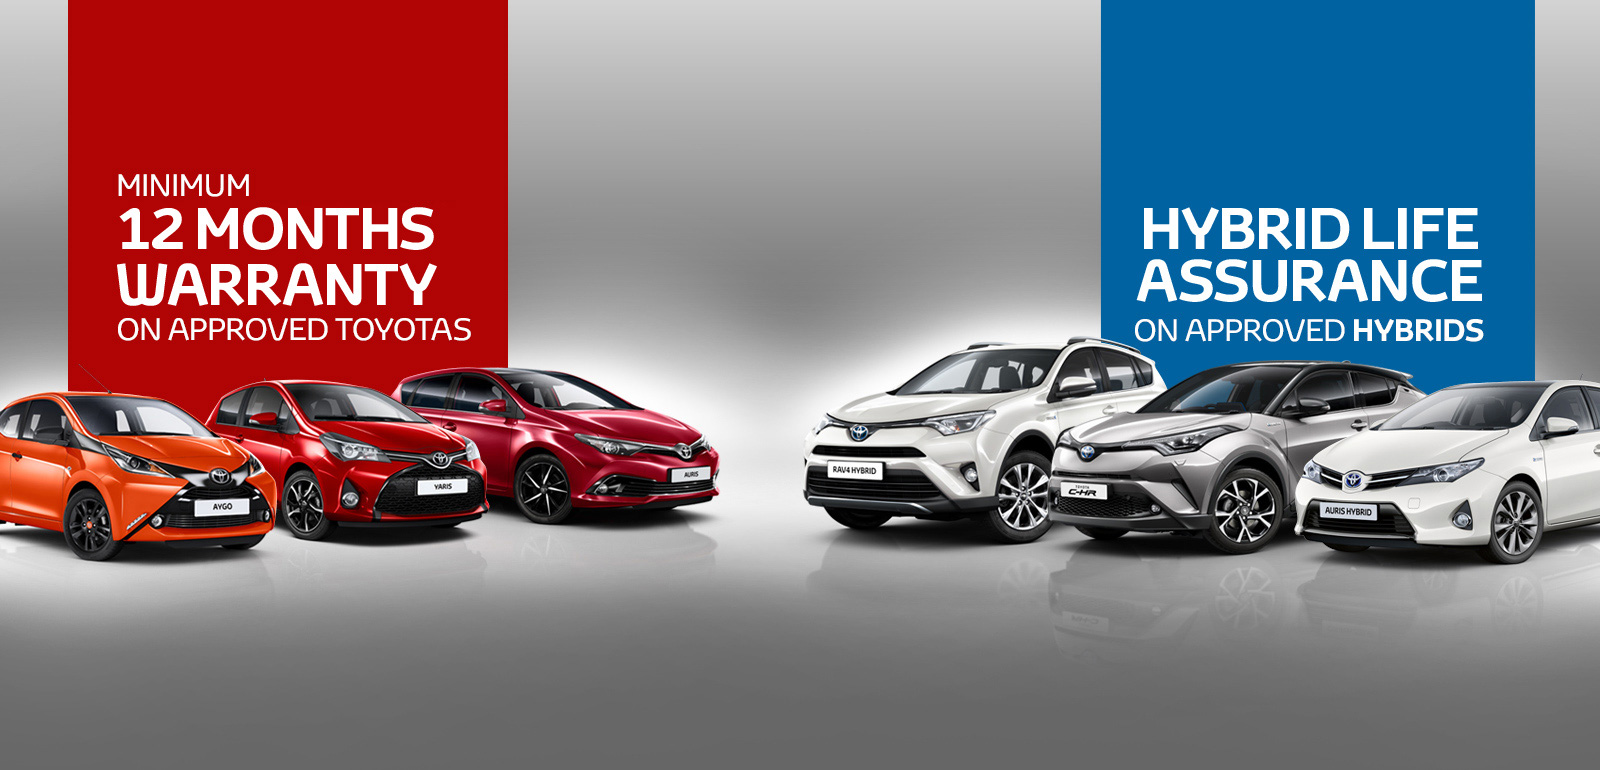 Why buy a Toyota Plus approved used car from a Toyota dealer?